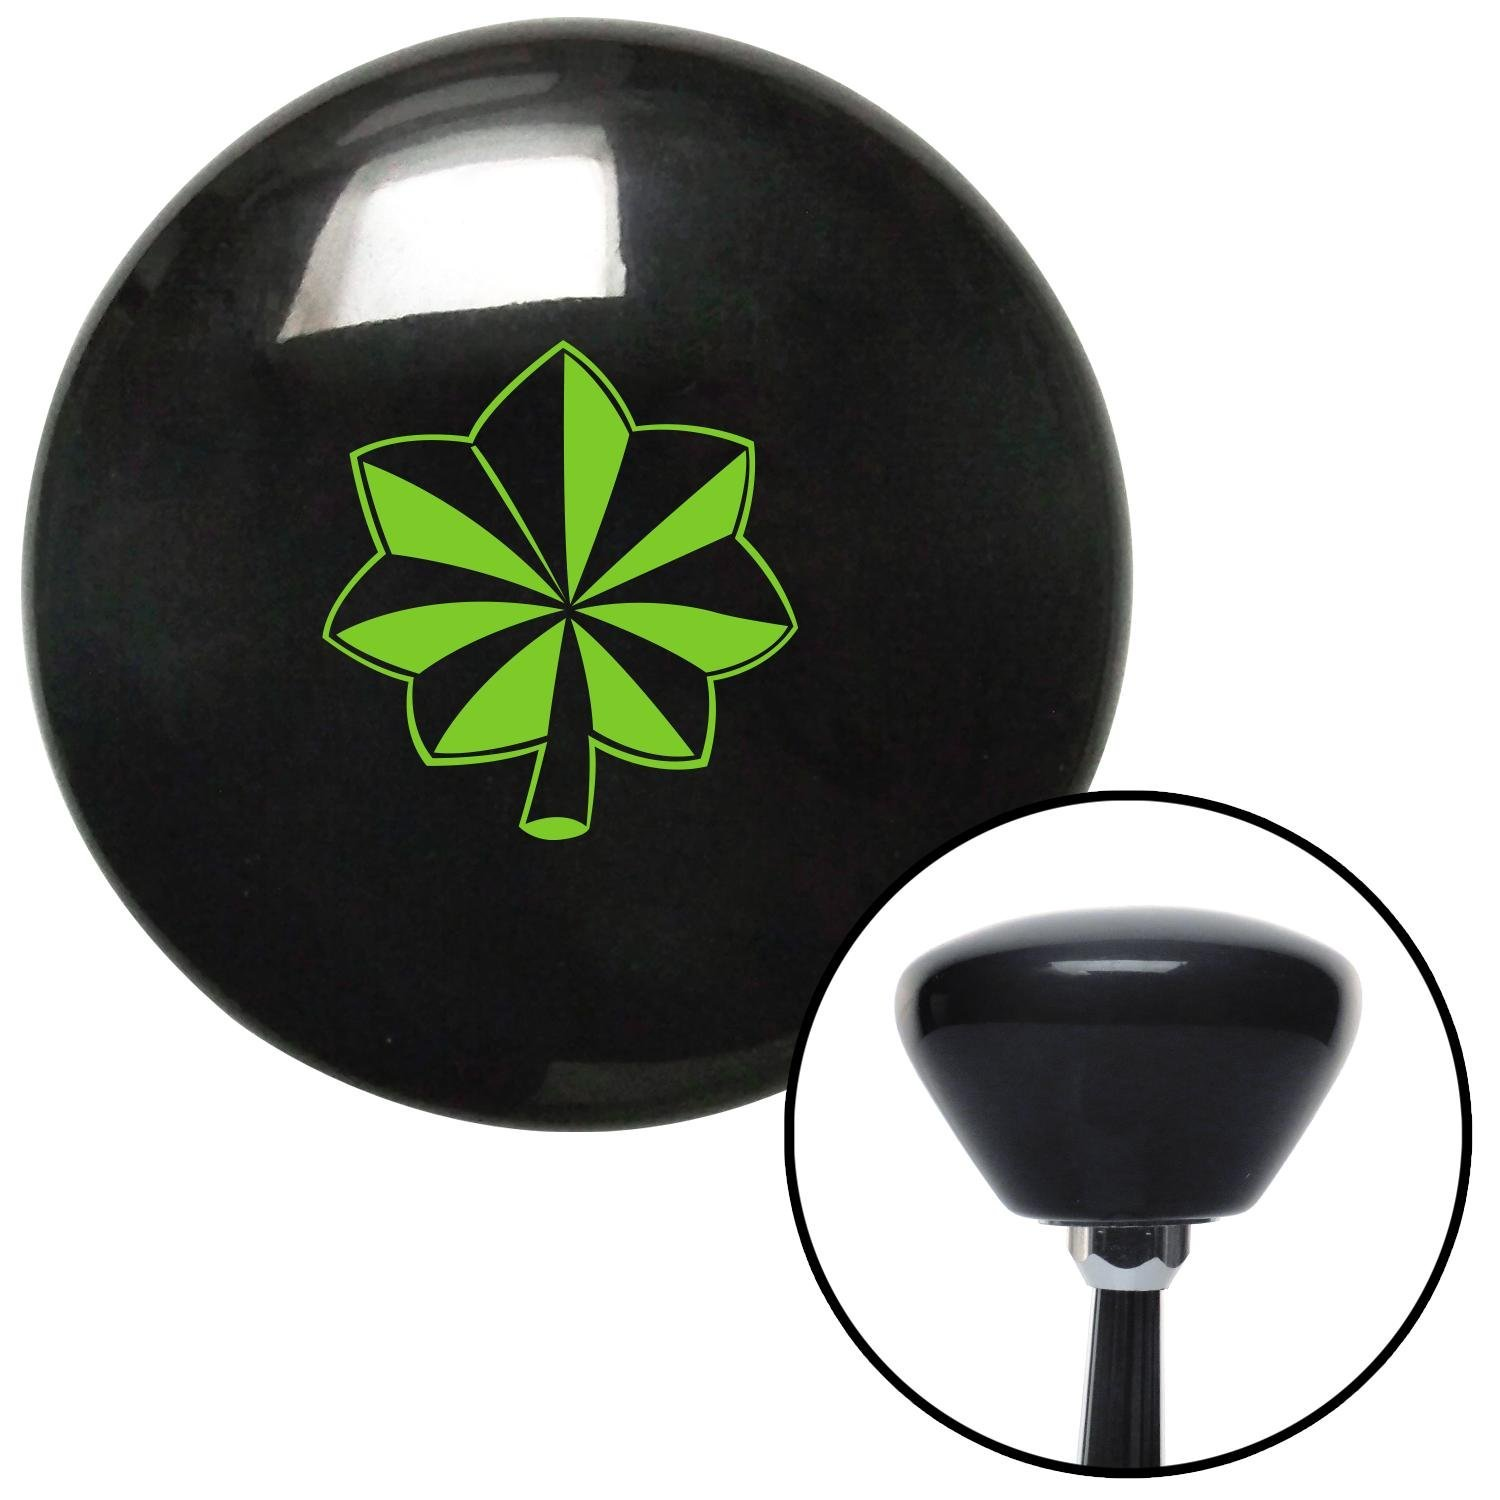 American Shifter 146960 Black Retro Shift Knob with M16 x 1.5 Insert Green Officer 04 and 05